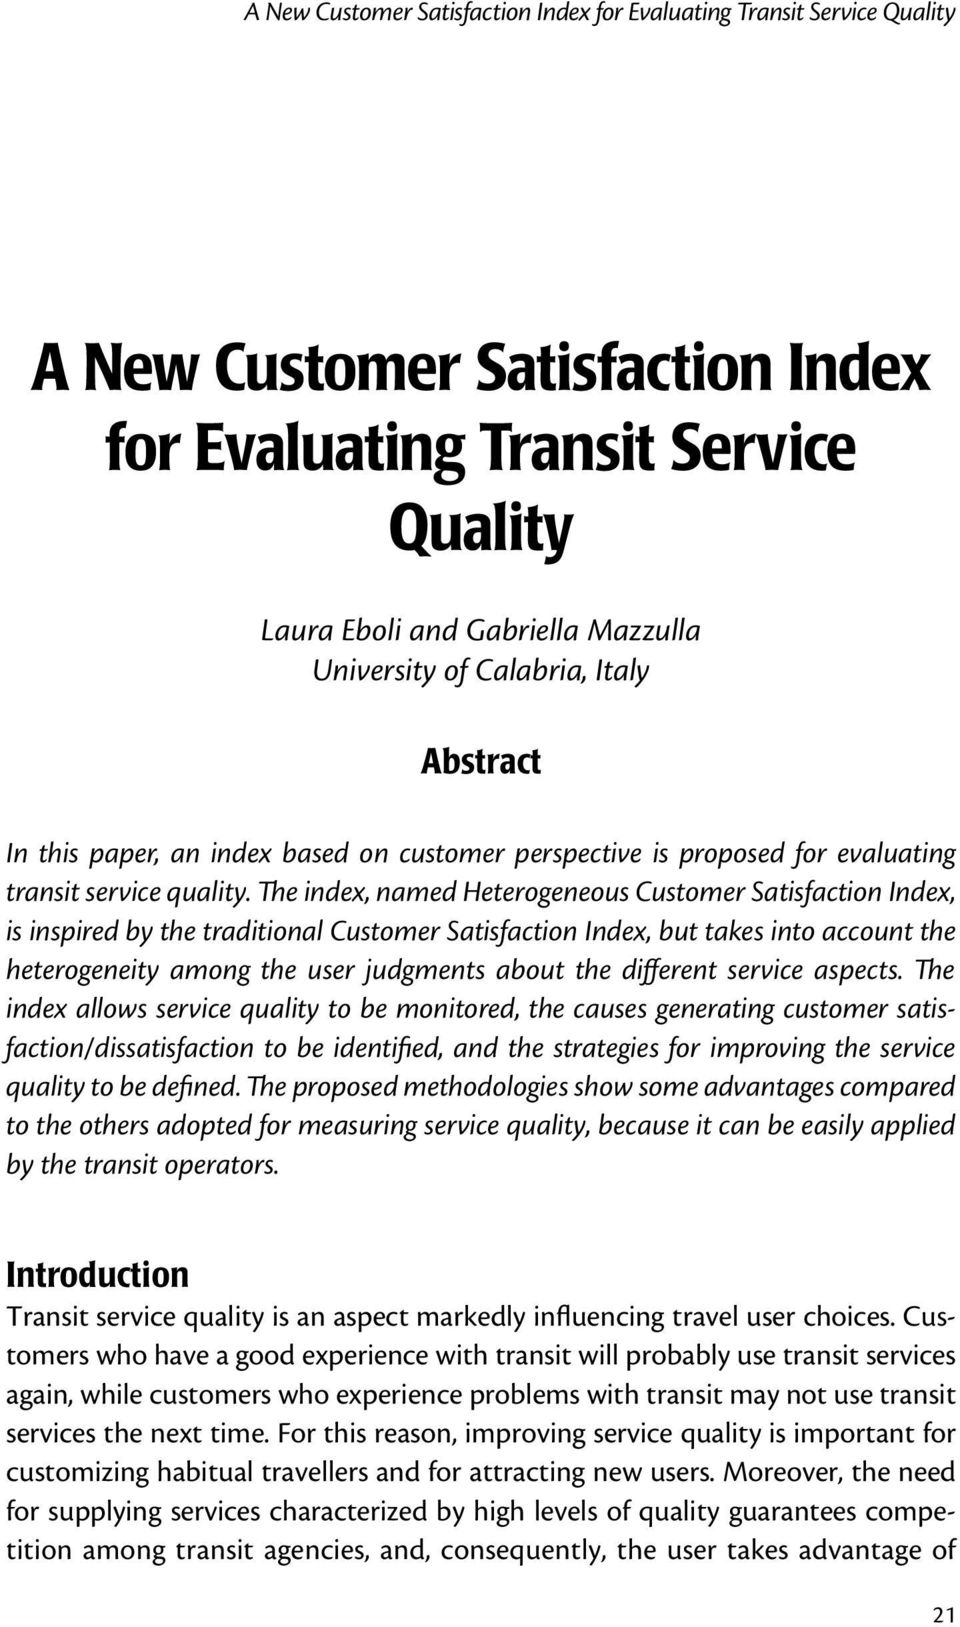 The index, named Heterogeneous Customer Satisfaction Index, is inspired by the traditional Customer Satisfaction Index, but takes into account the heterogeneity among the user judgments about the